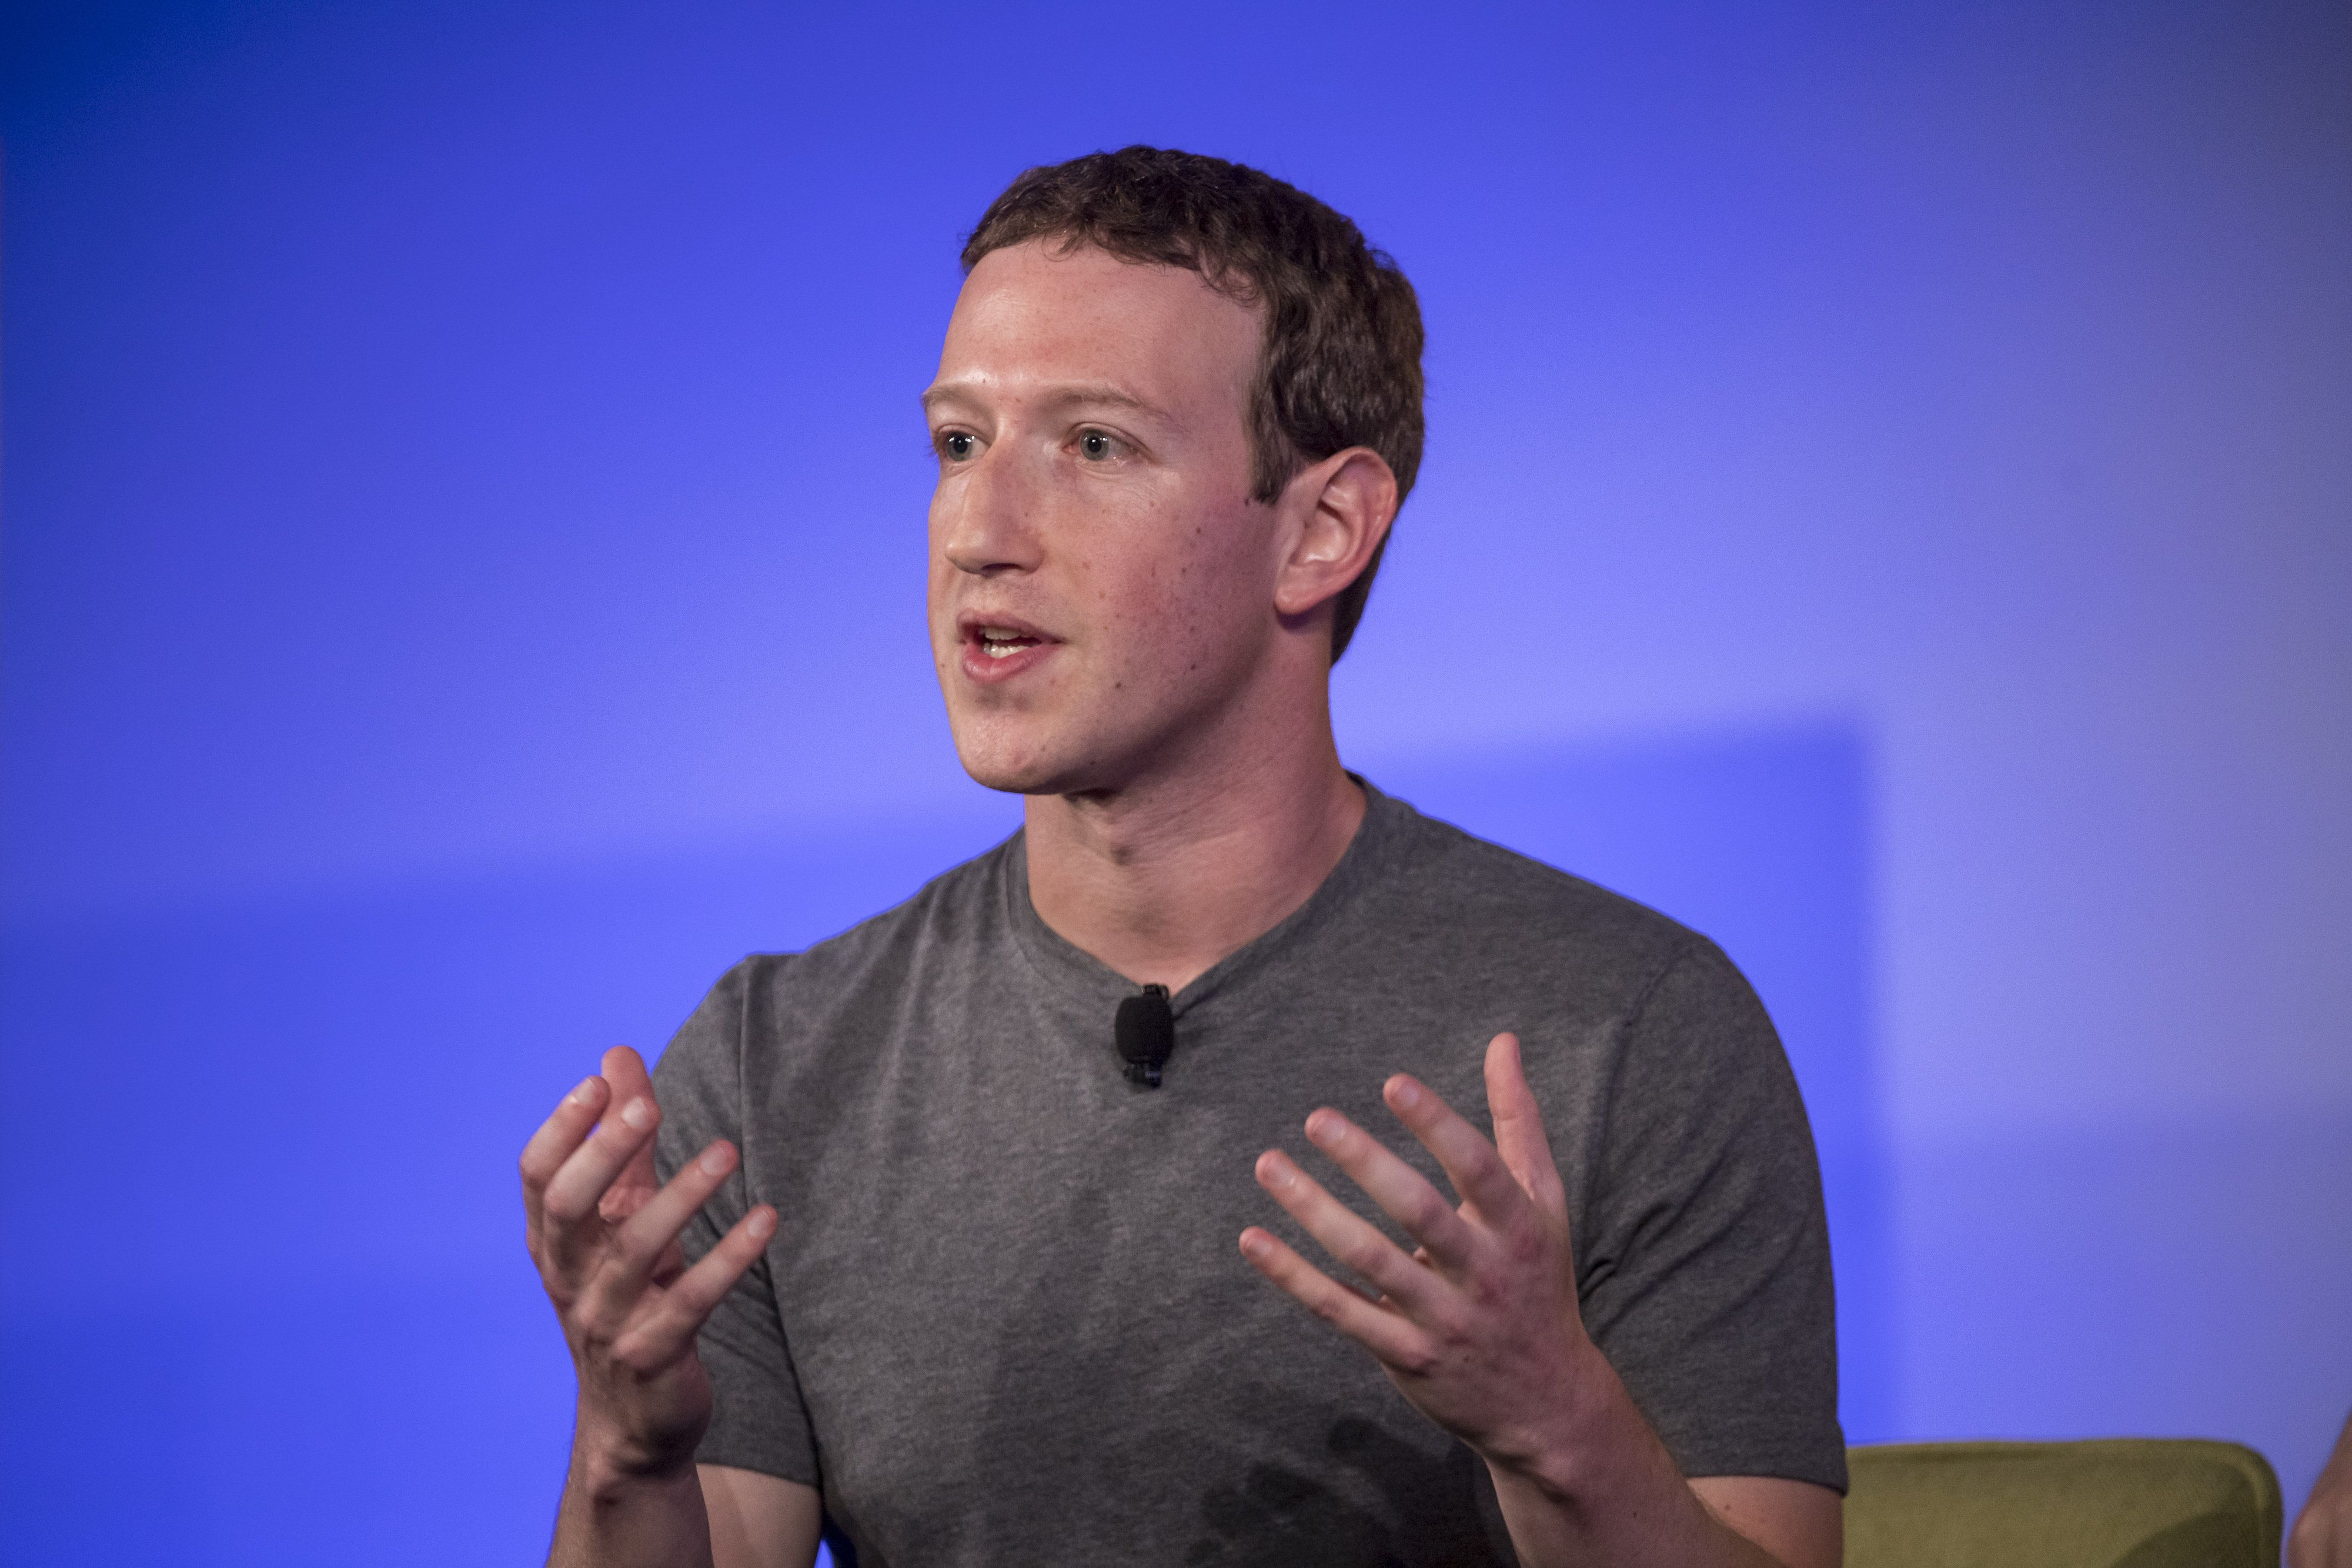 Mark Zuckerberg Is Expected To Testify Before Congress On Data Misuse: